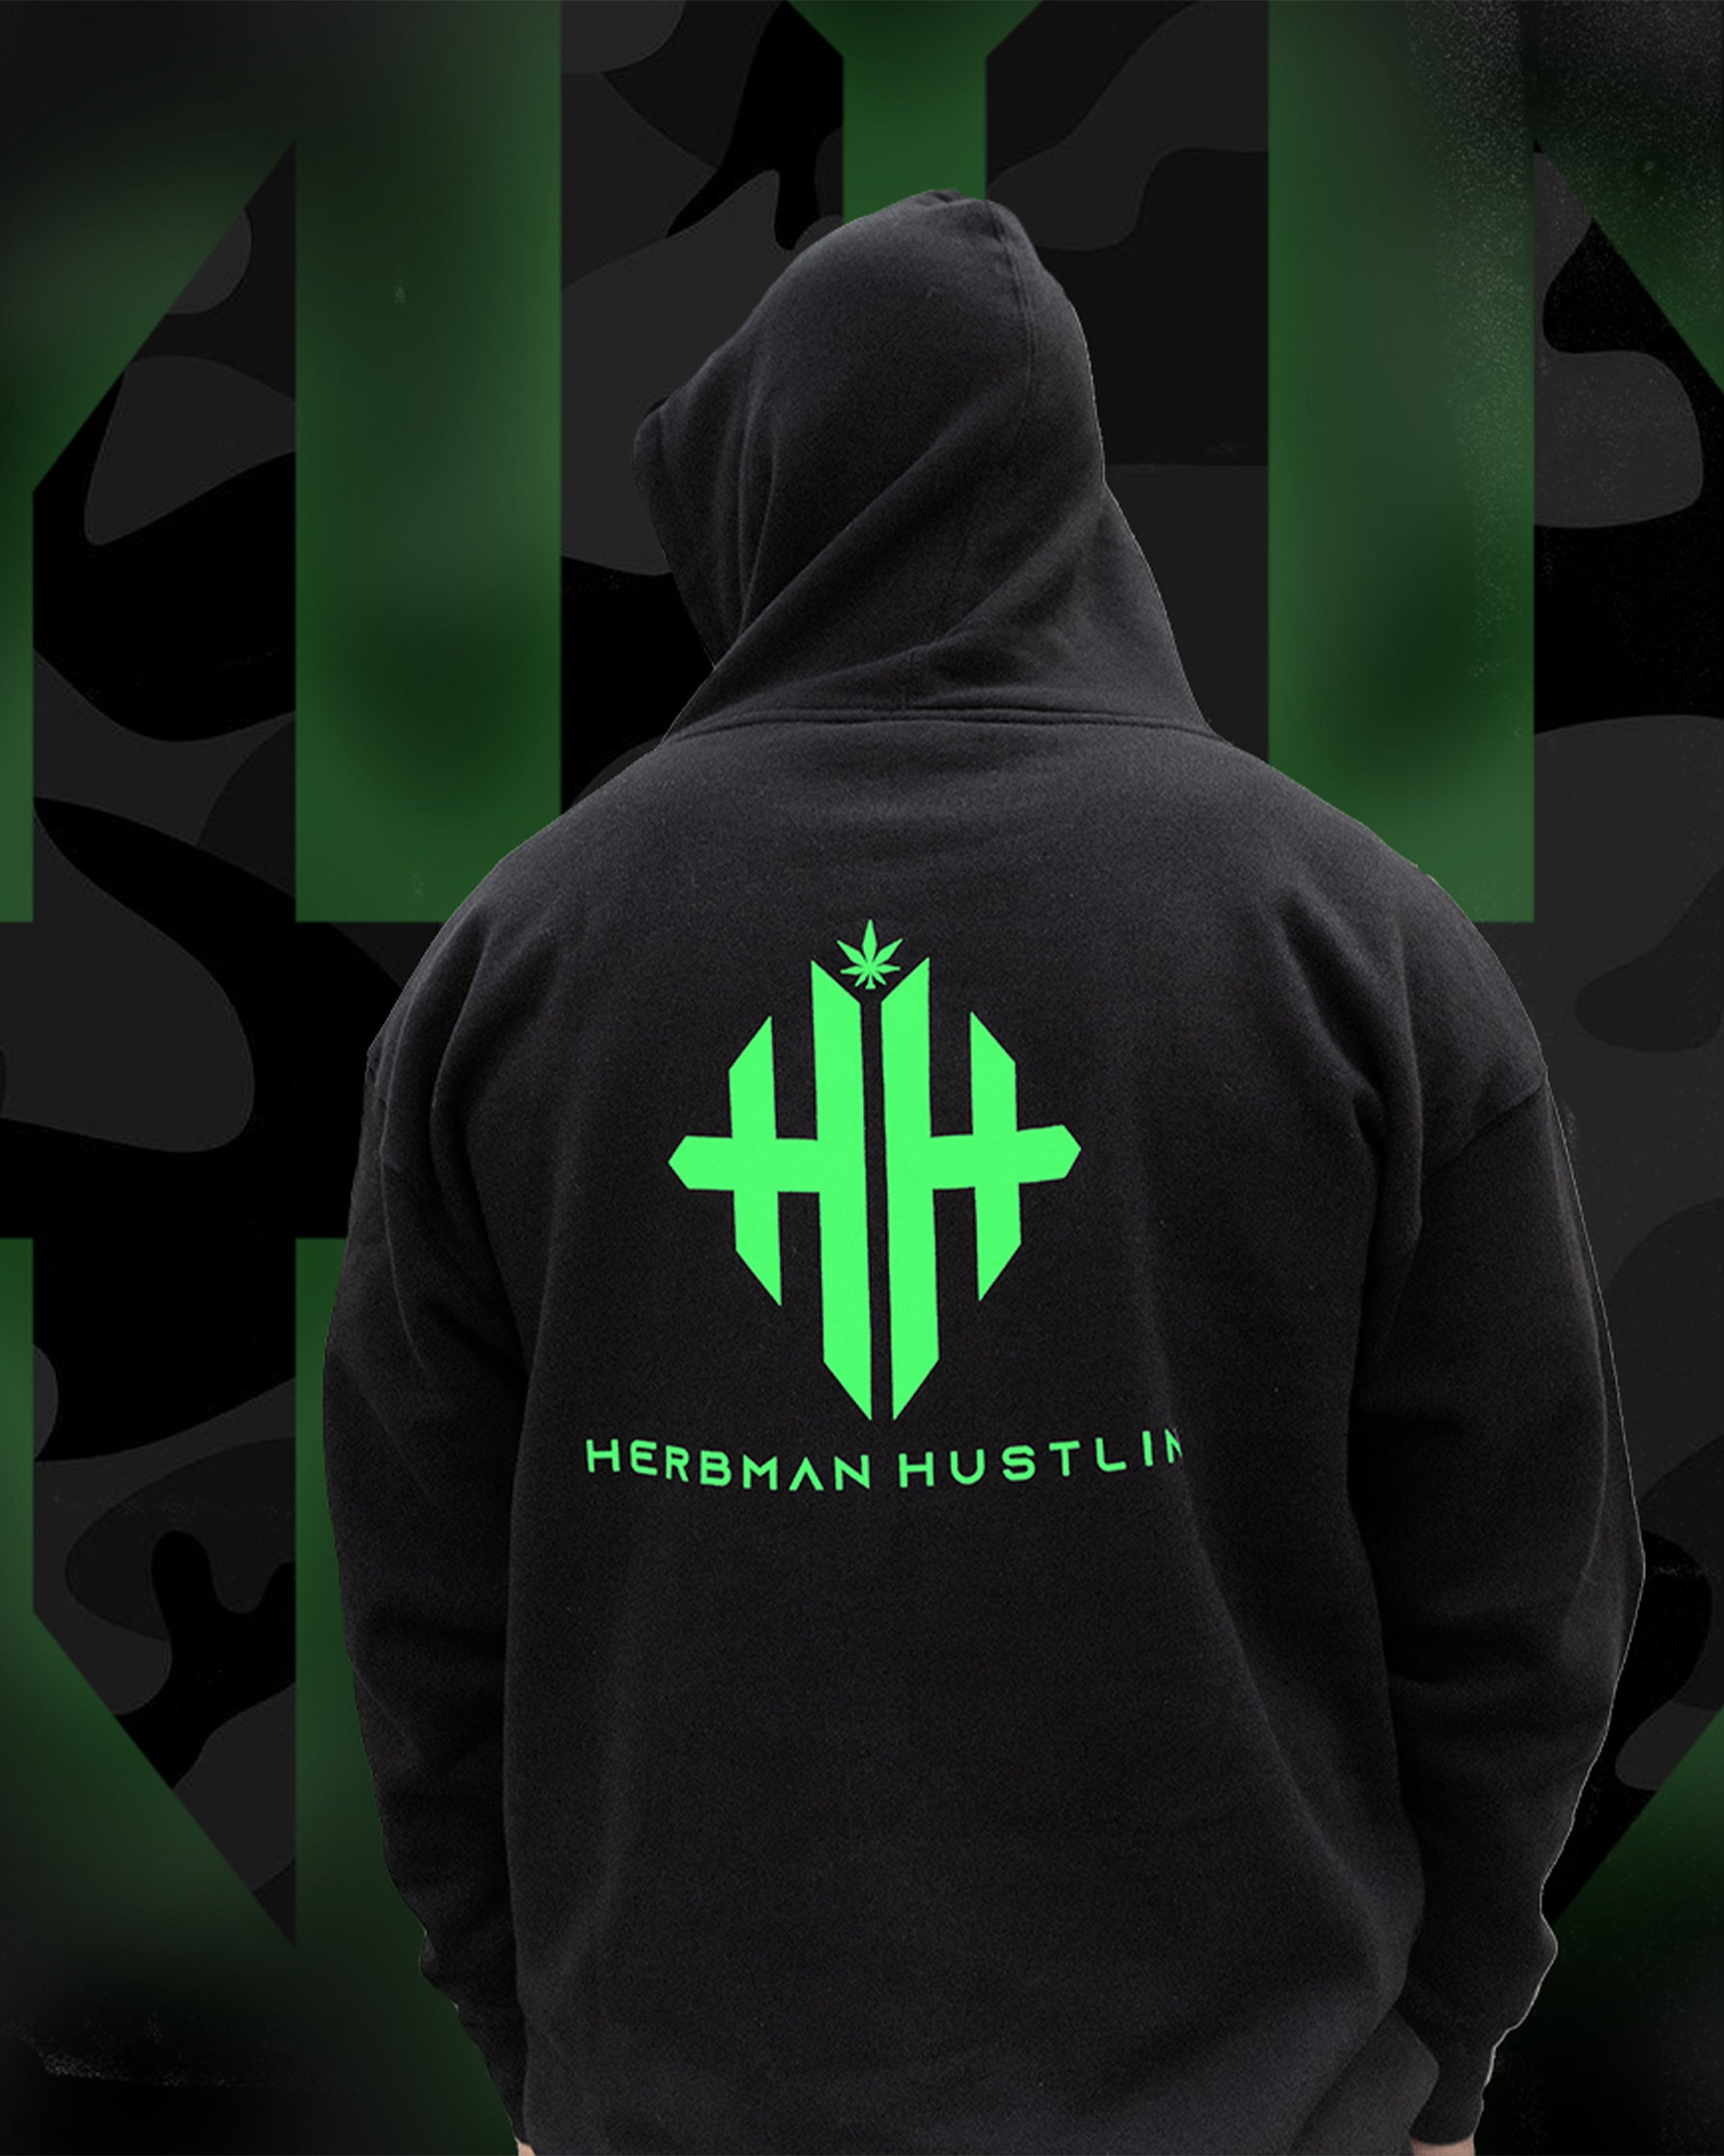 Herbman Hustlin Monogram Tracksuit- Black/Glow in the Dark - Back